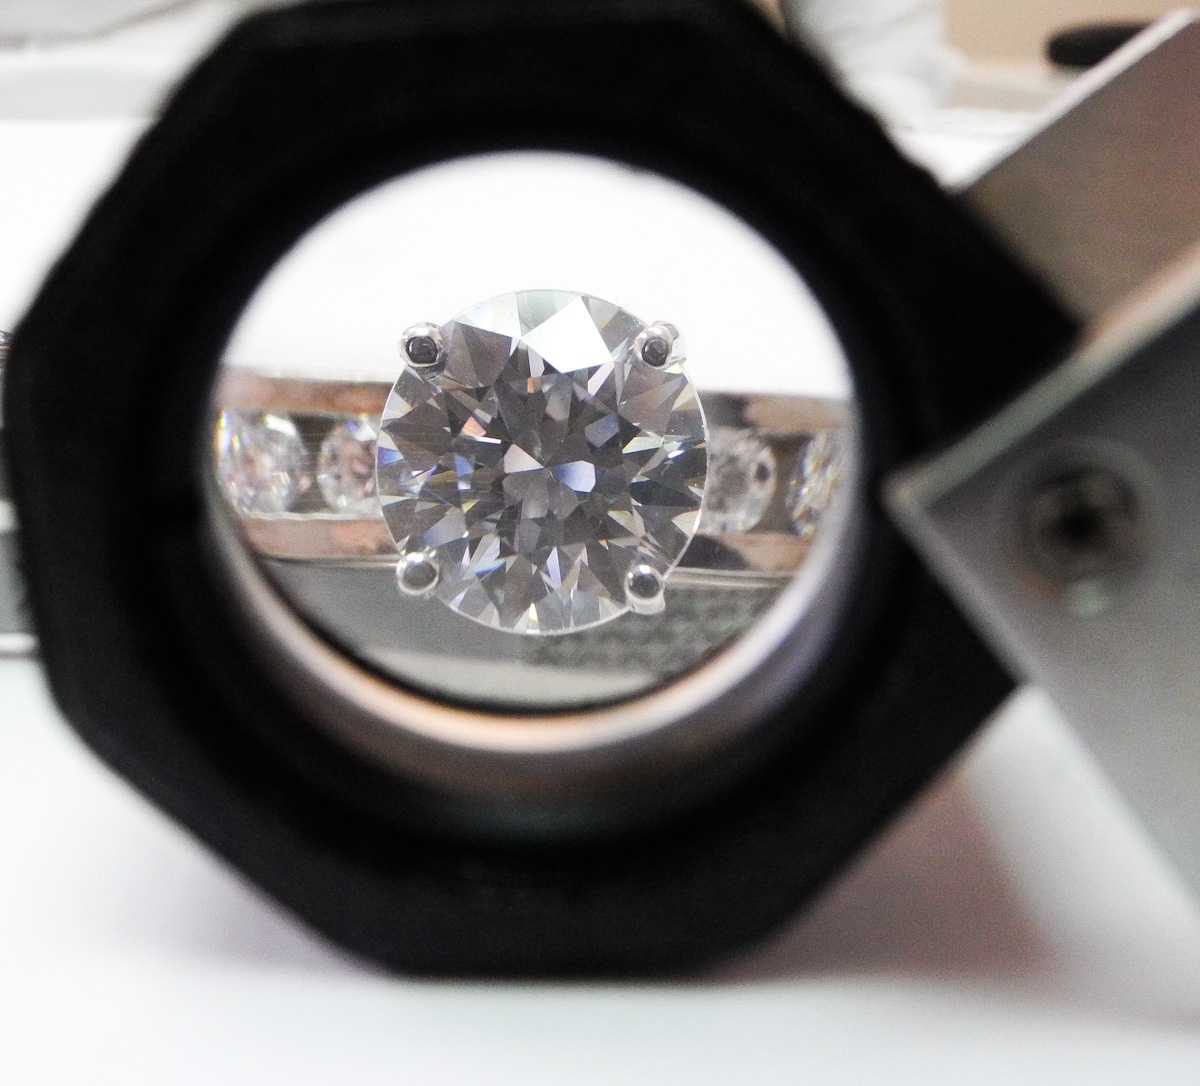 Diamond Cut Grading